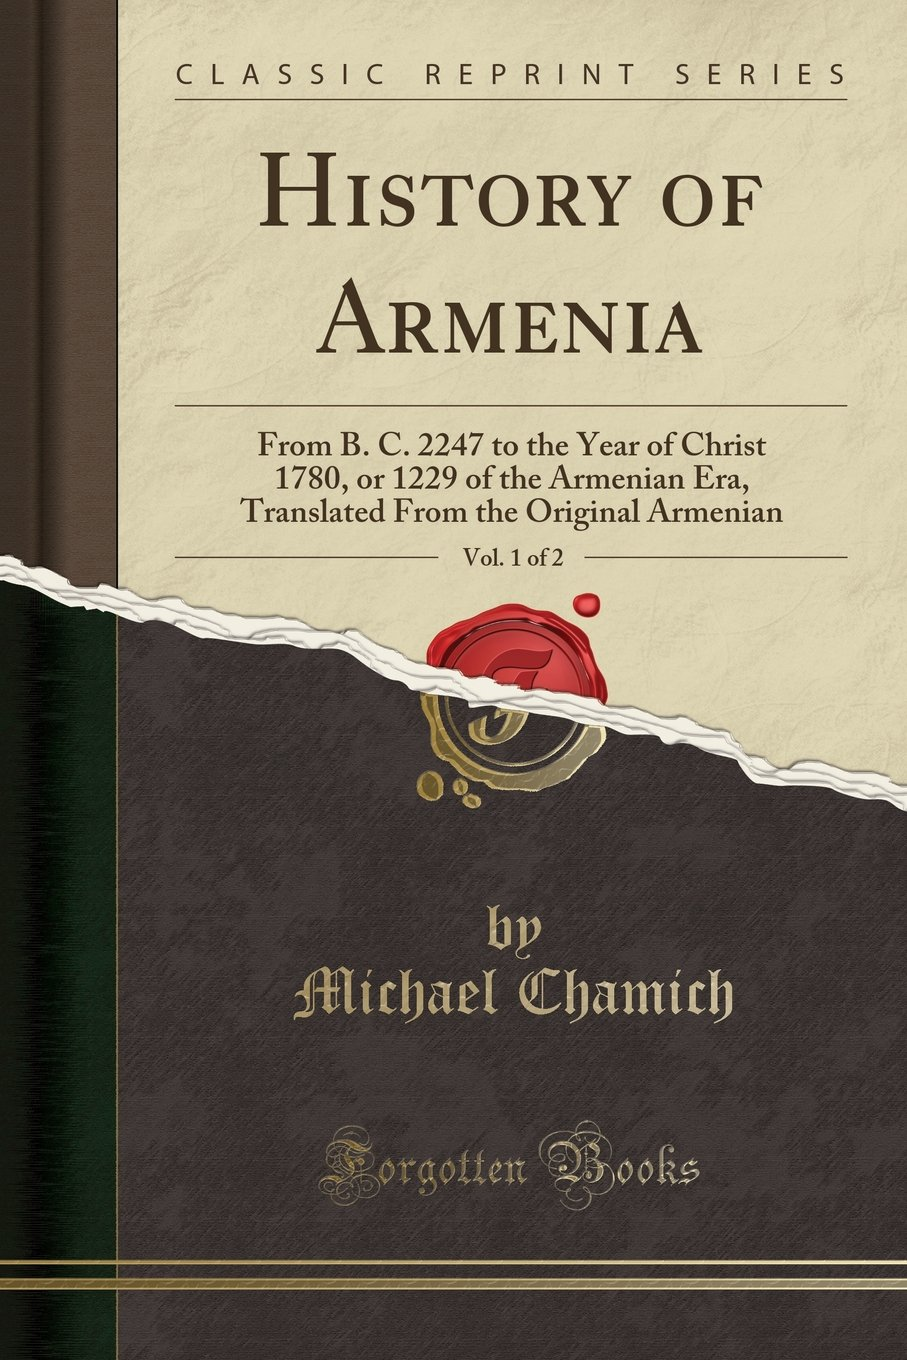 History of Armenia, Vol. 1 of 2: From B. C. 2247 to the Year of Christ 1780, or 1229 of the Armenian Era, Translated from the Original Armenian (Classic Reprint) PDF ePub fb2 book